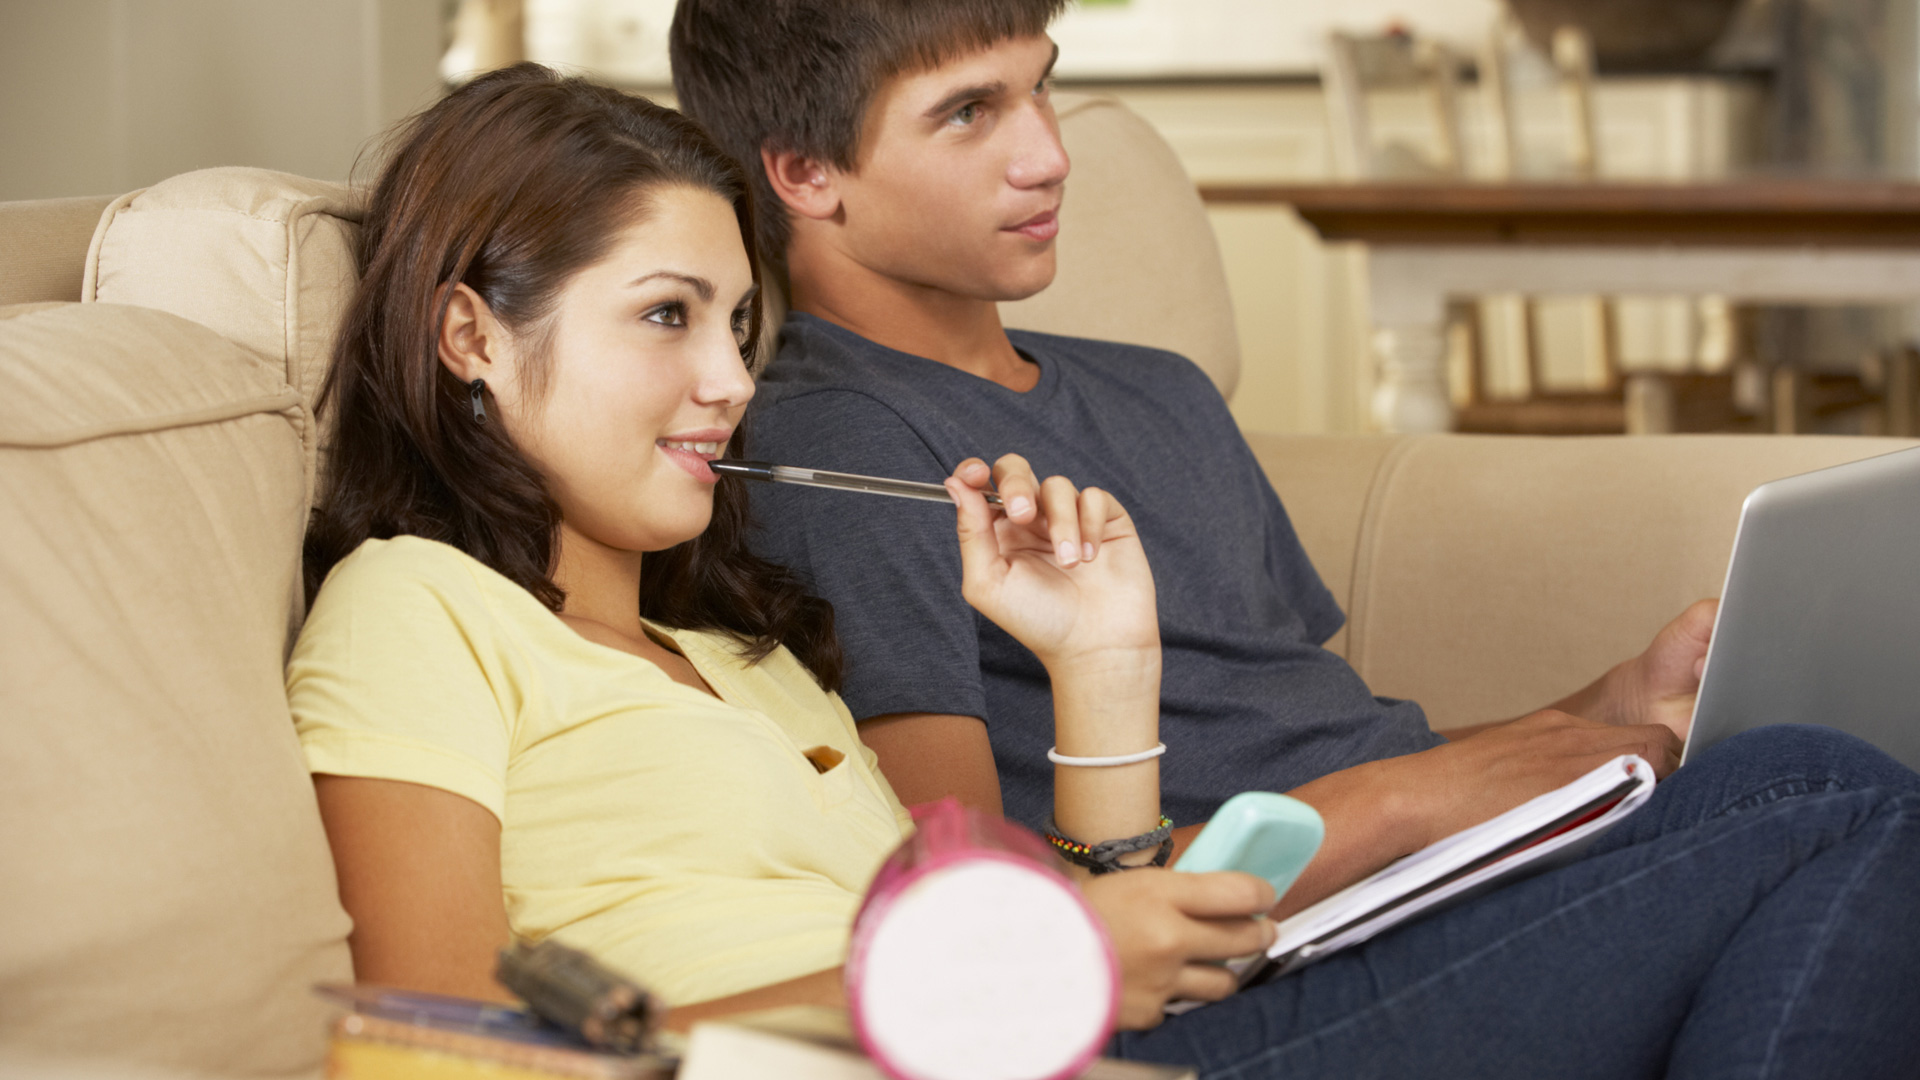 Does Watching TV Before Homework Affect Studying?